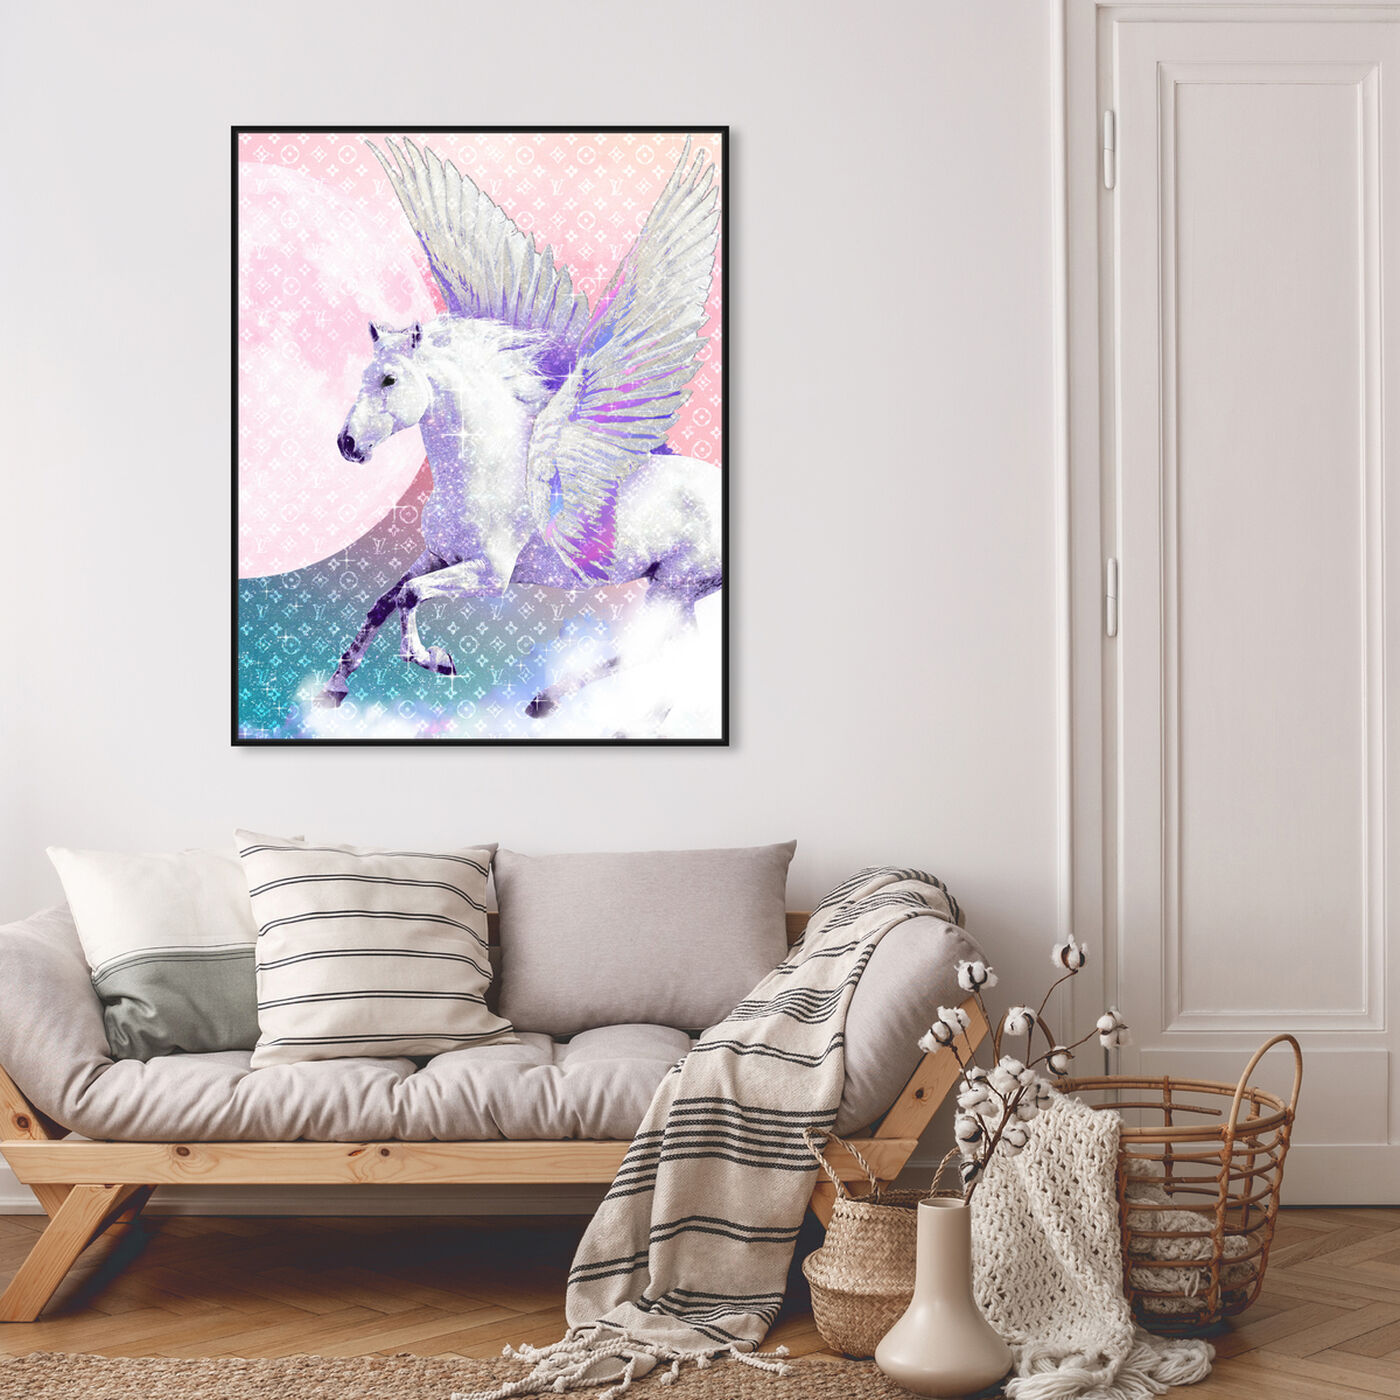 Hanging view of Right Vision featuring animals and fantasy creatures art.